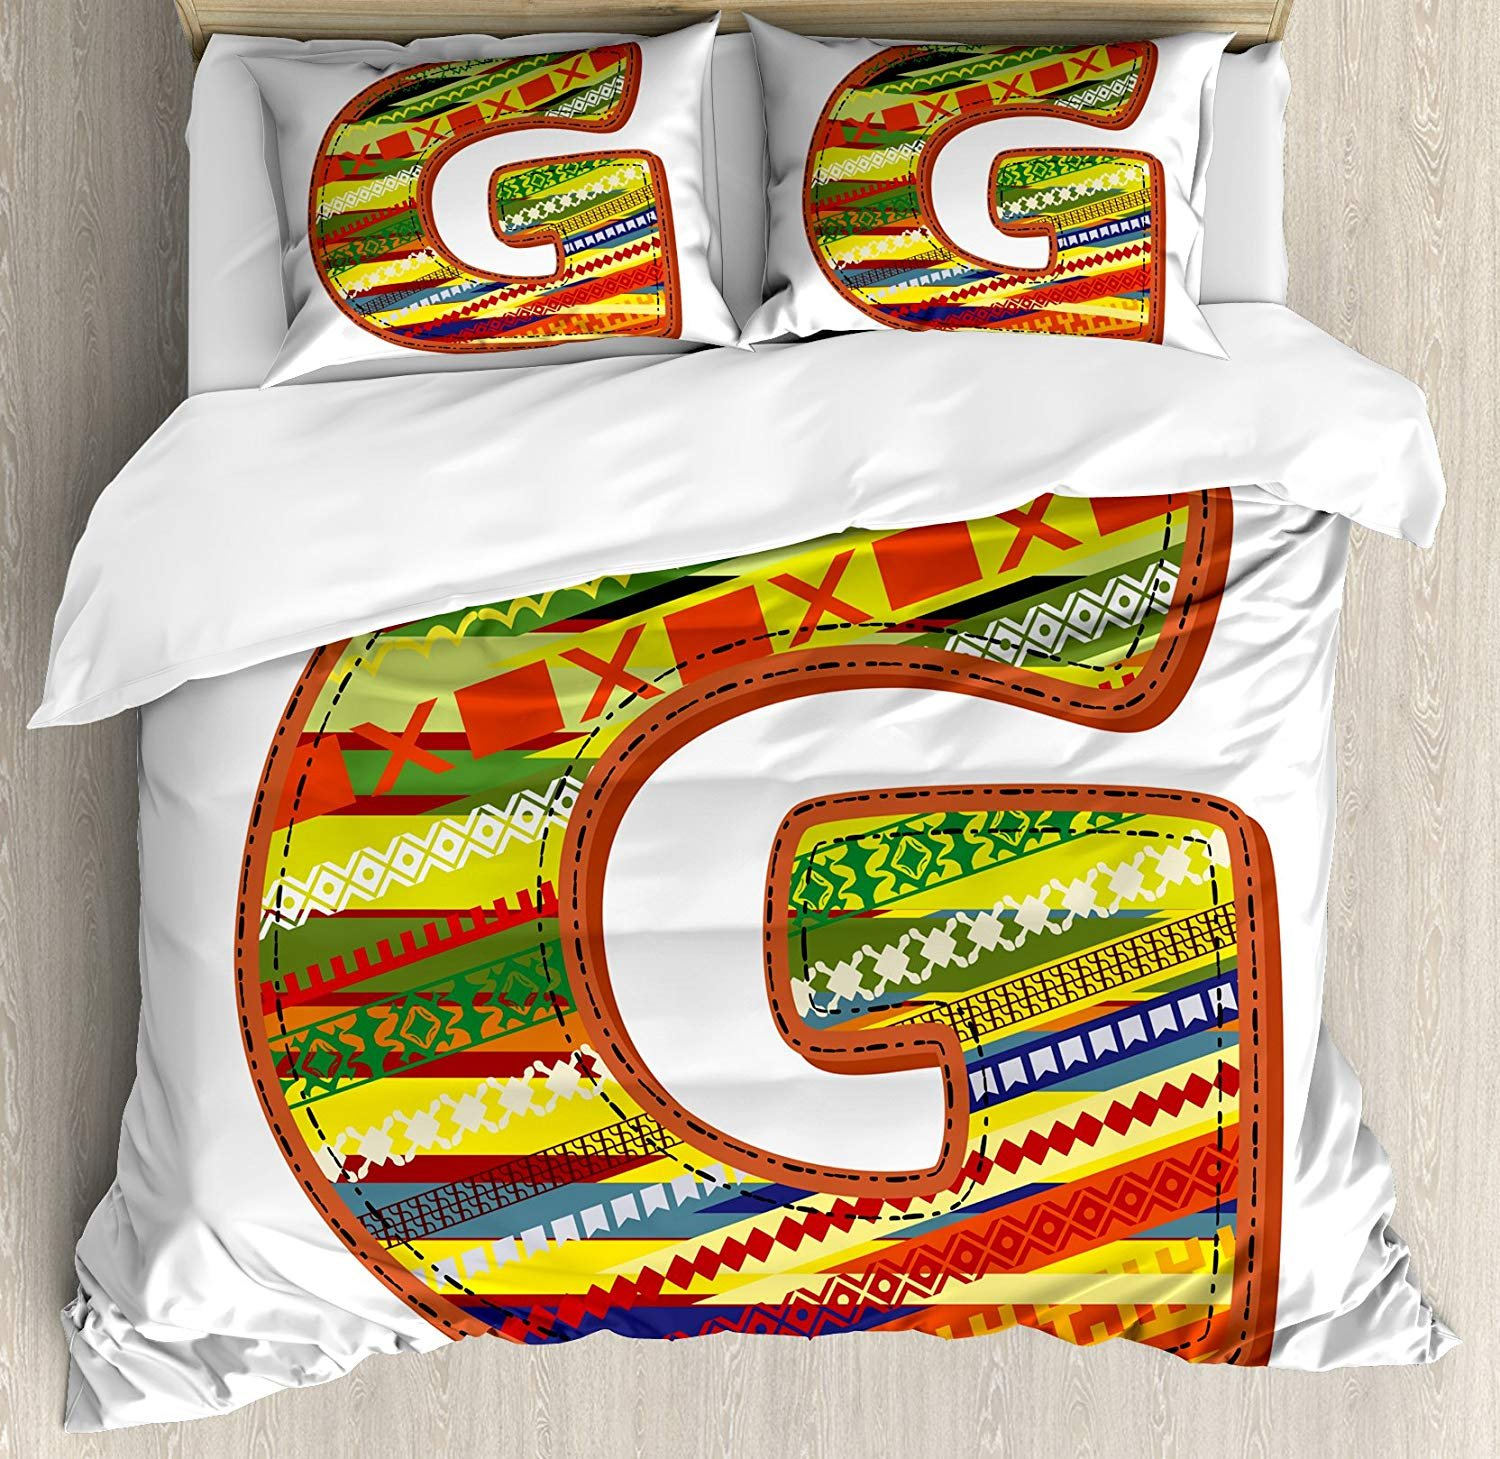 Full Size Letter G 3 PCS Duvet Cover Set, G Letter Character Language System Learning College Surname Red Calligraphy Design, Bedding Set Quilt Bedspread for Children/Teens/Adults/Kids, Multicolor